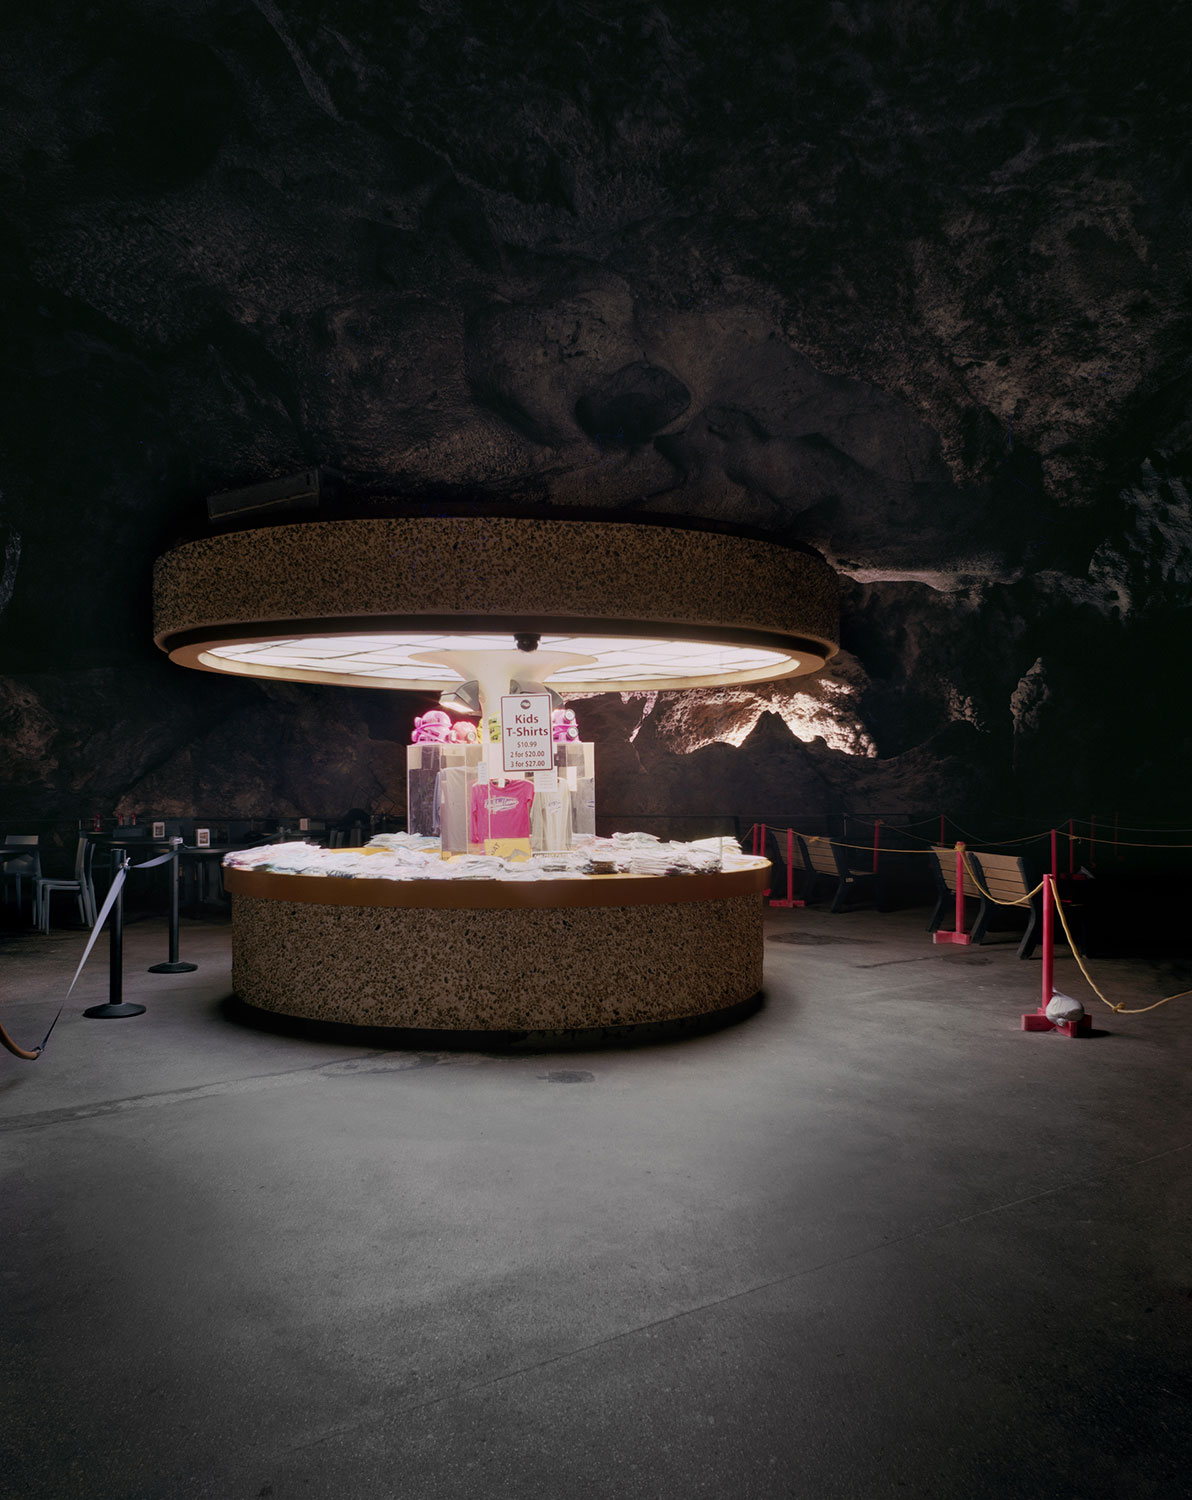 Austin Irving, Carlsbad Caverns Souvenir Stand, New Mexico, 2010.